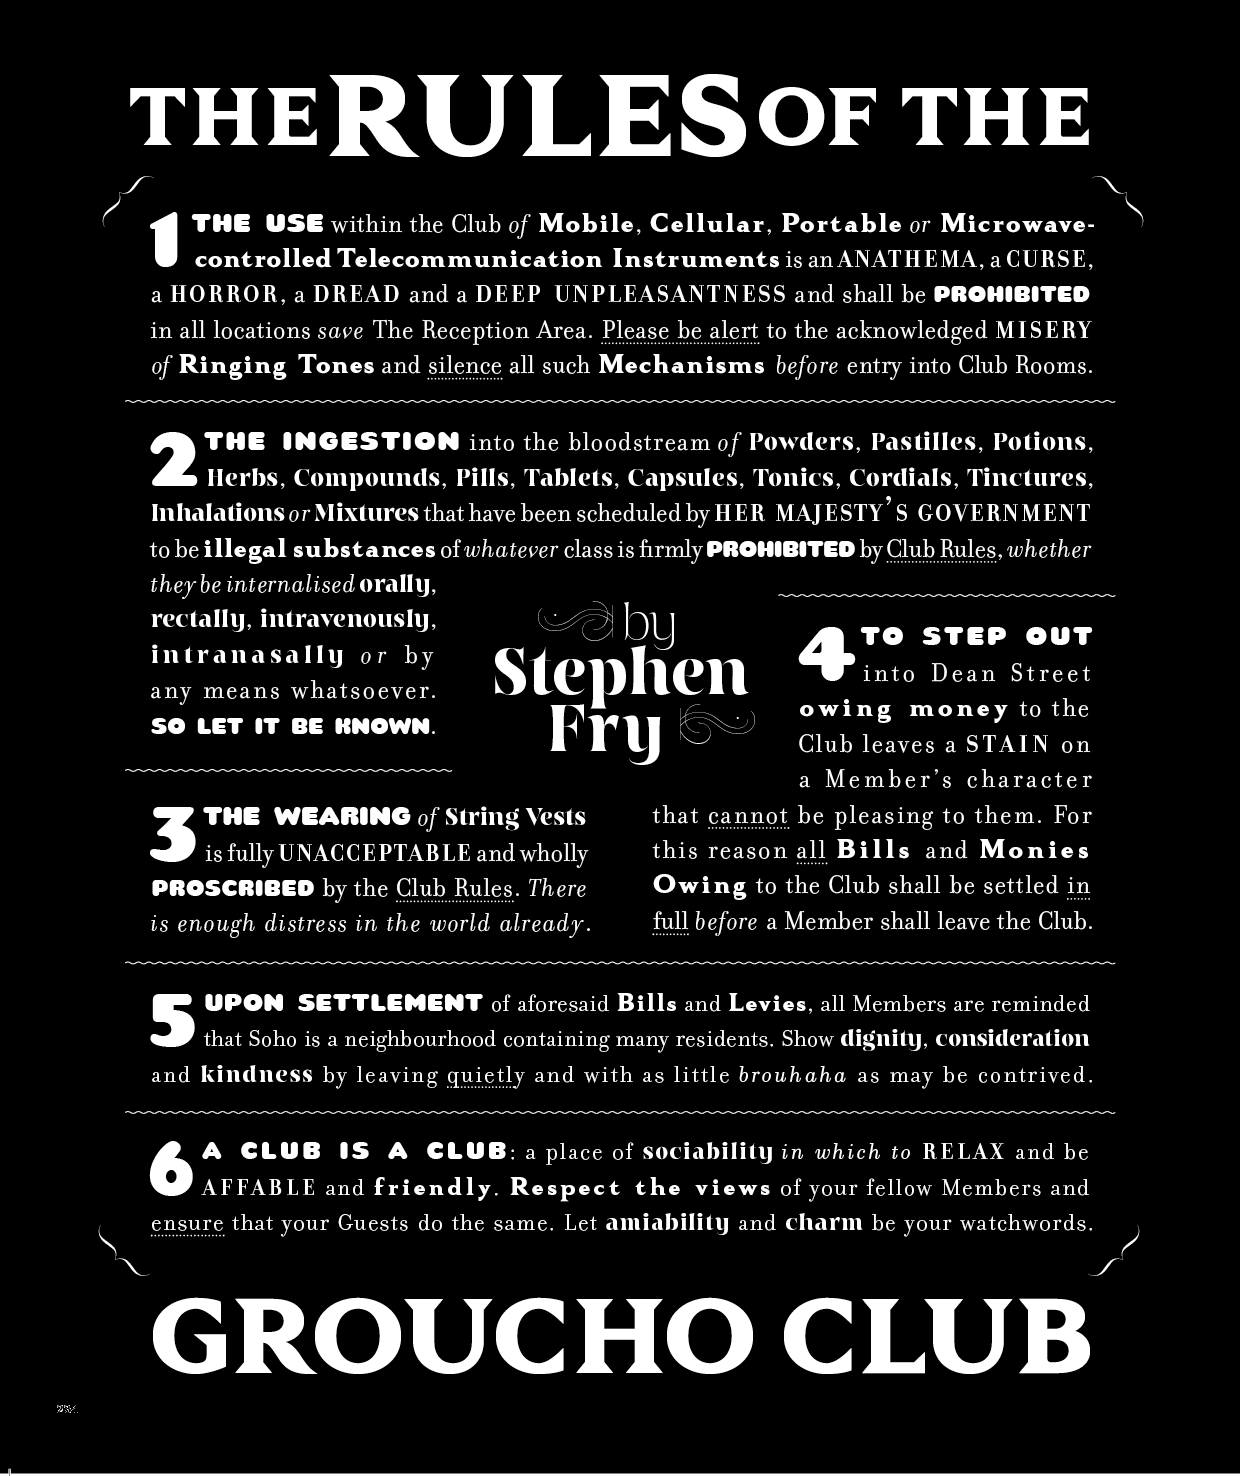 Pleasant Groucho Club  A Private Members Club In Soho London With Marvelous Club Rules With Beauteous Reclaimed Garden Ornaments Also Garden Hose Spray Gun In Addition Garden Cushions Pads And Folding Garden Chair As Well As Albir Garden Complex Additionally Bespoke Wooden Garden Gates From Thegrouchoclubcom With   Marvelous Groucho Club  A Private Members Club In Soho London With Beauteous Club Rules And Pleasant Reclaimed Garden Ornaments Also Garden Hose Spray Gun In Addition Garden Cushions Pads From Thegrouchoclubcom